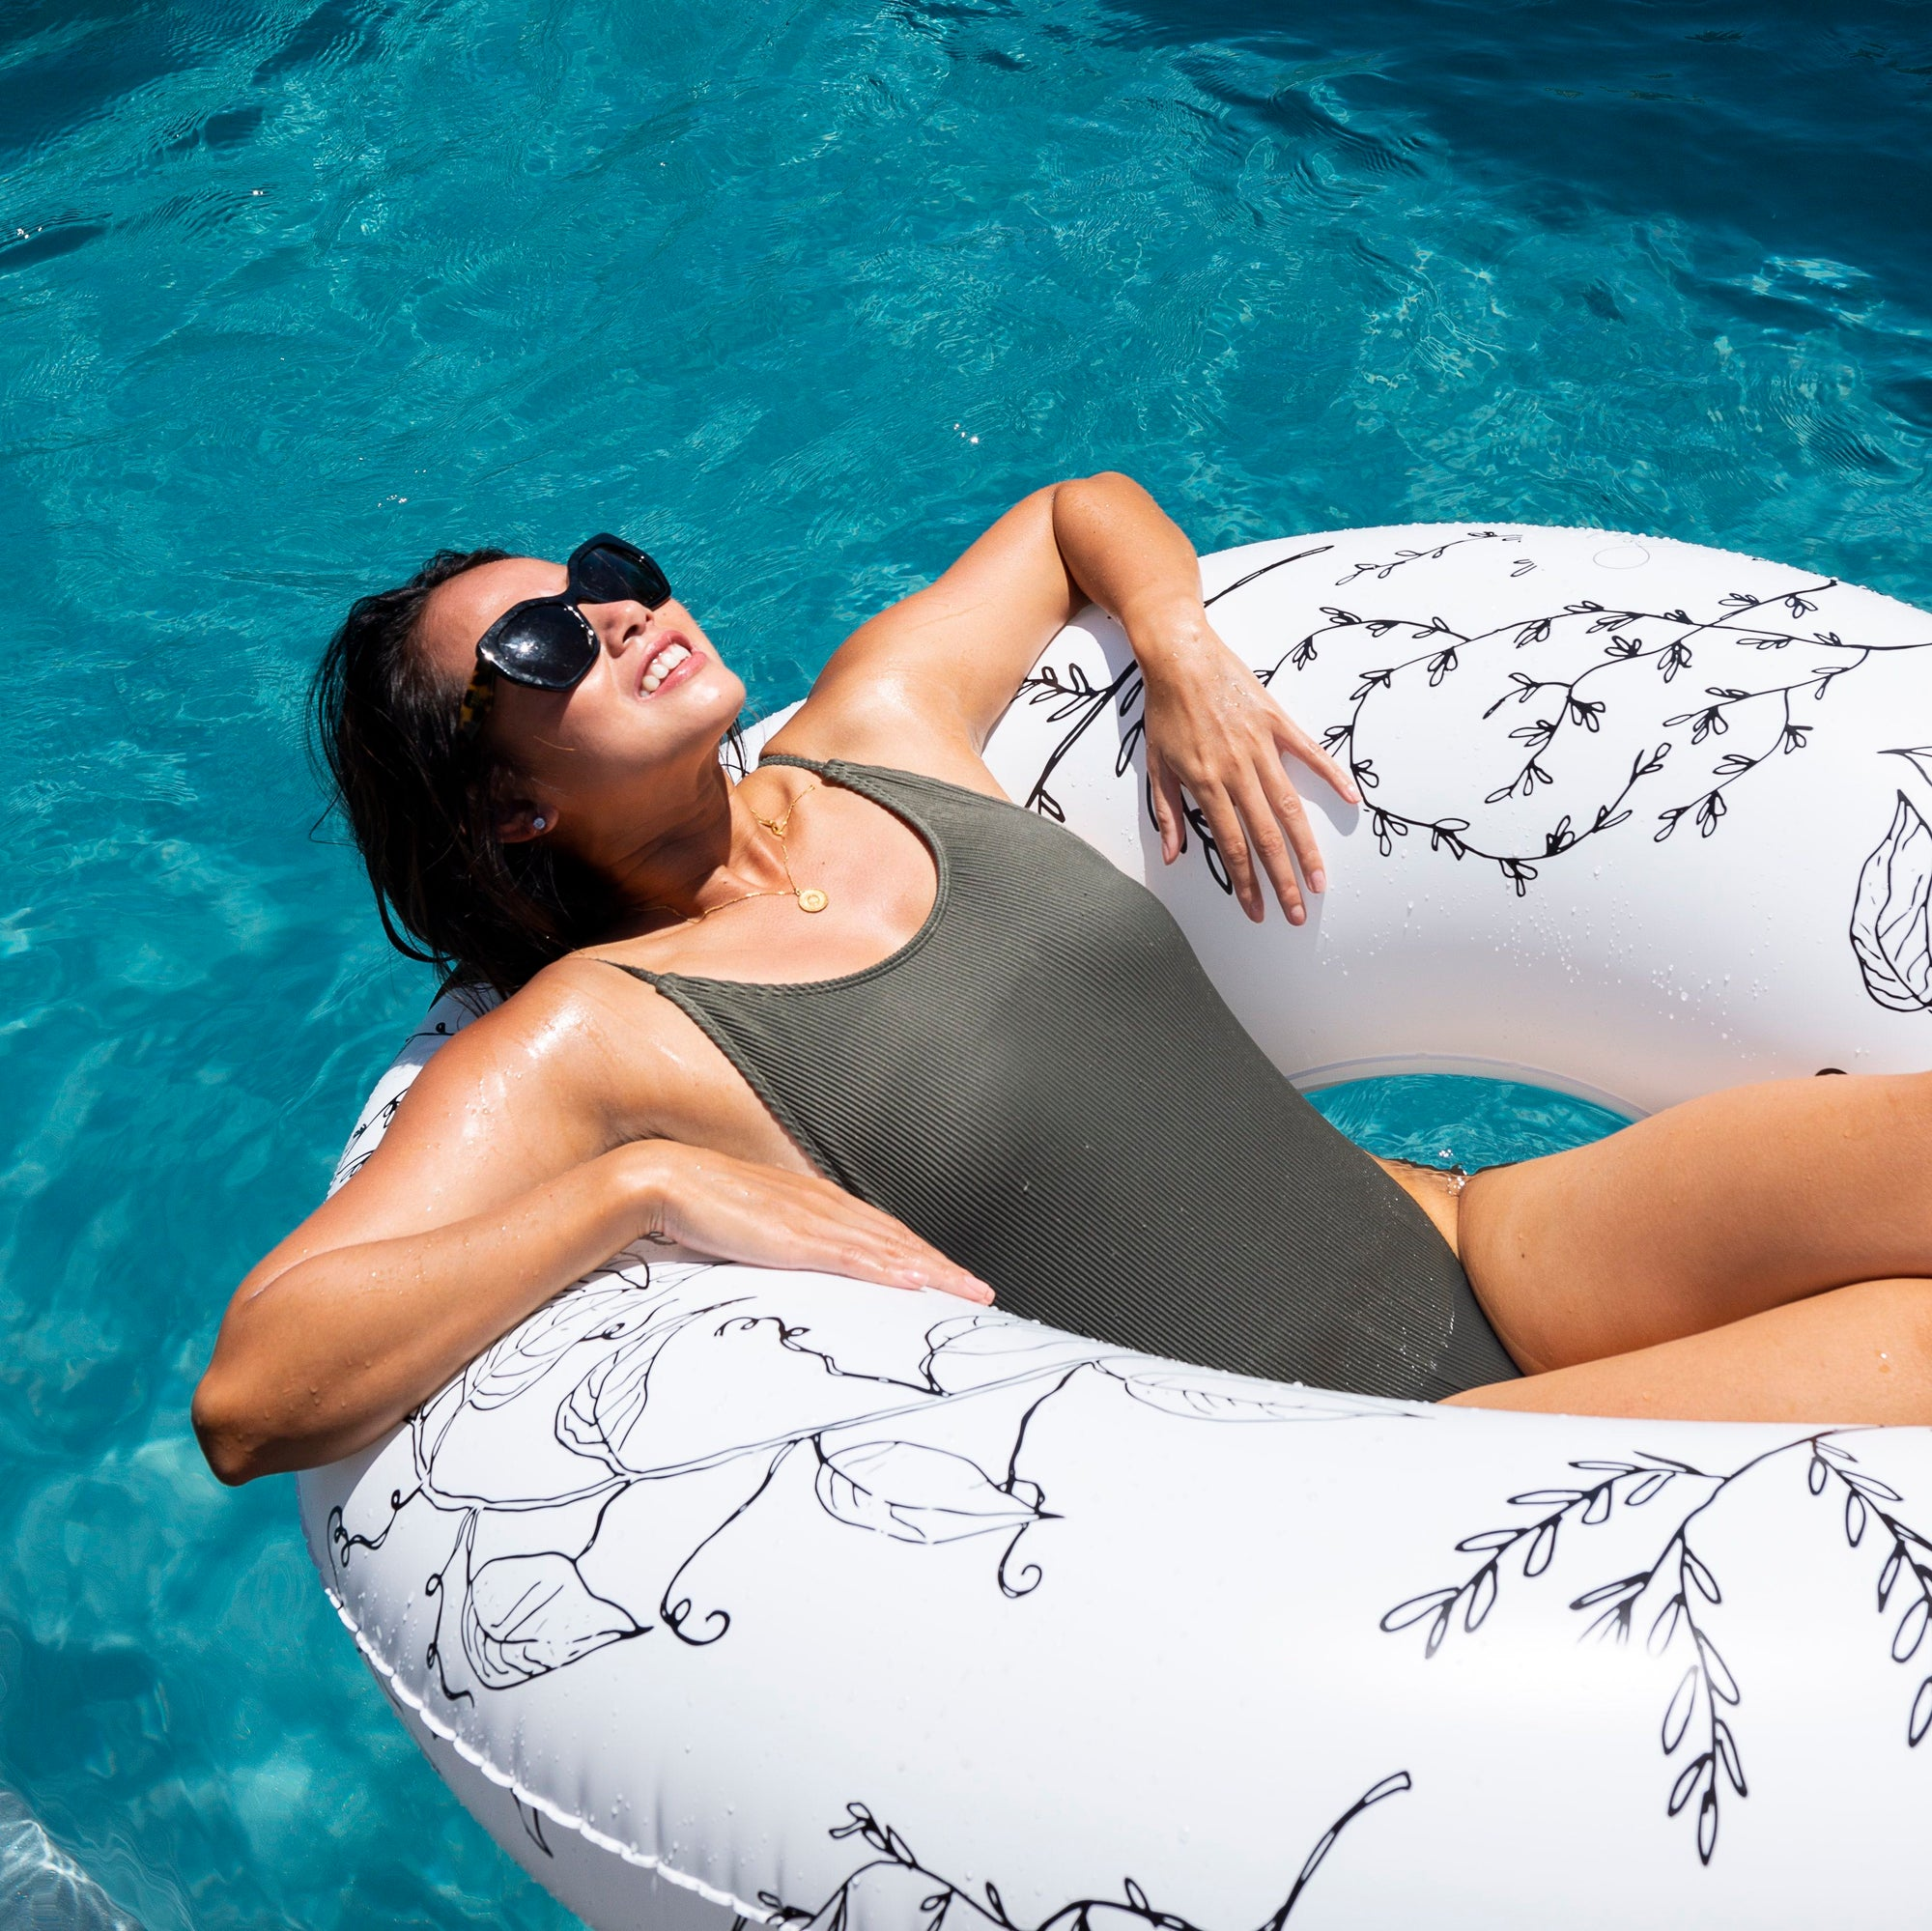 &SUNDAY designer pool floats